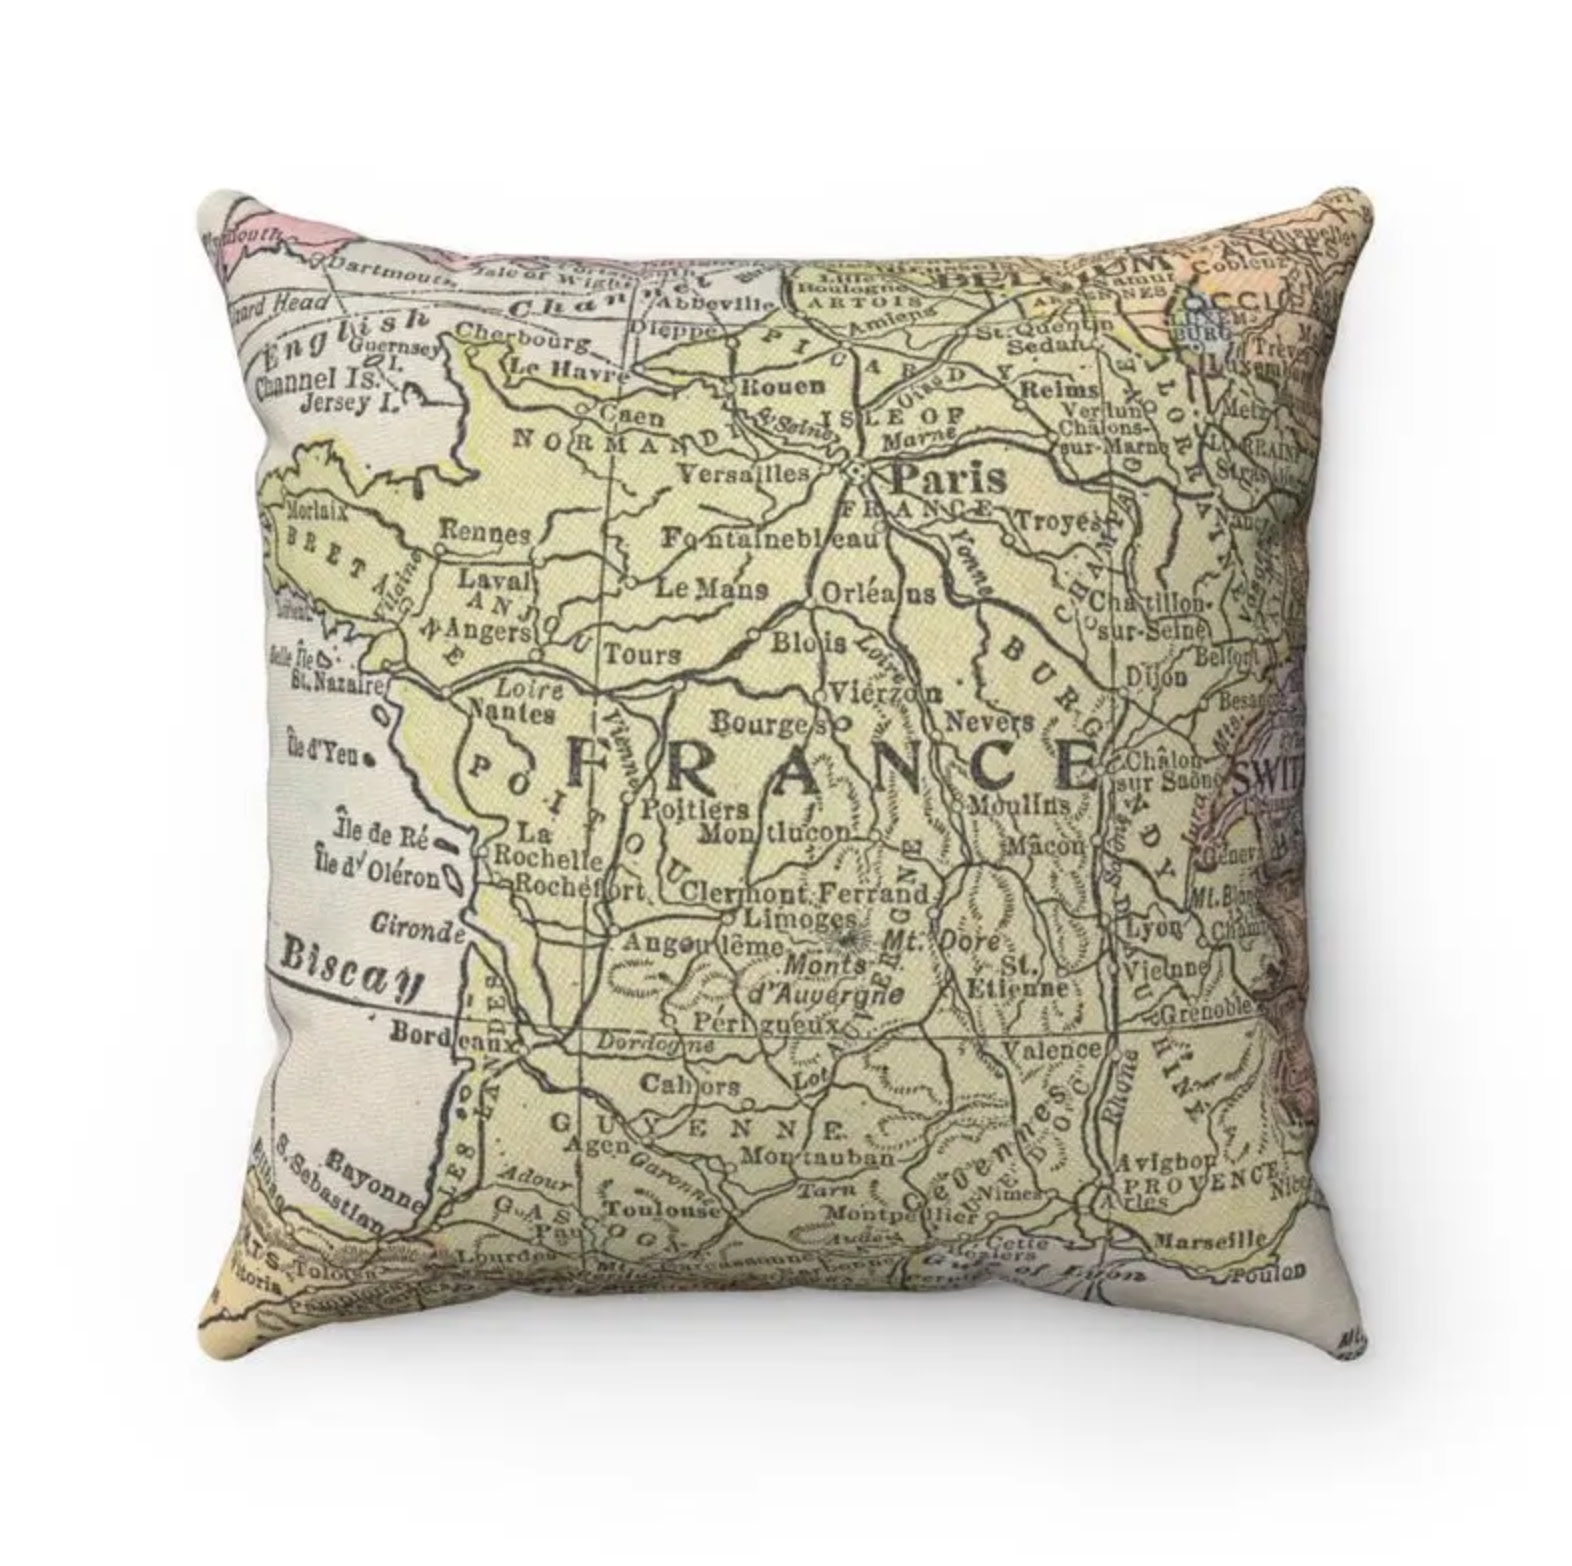 France Map Pillow - Cover Only